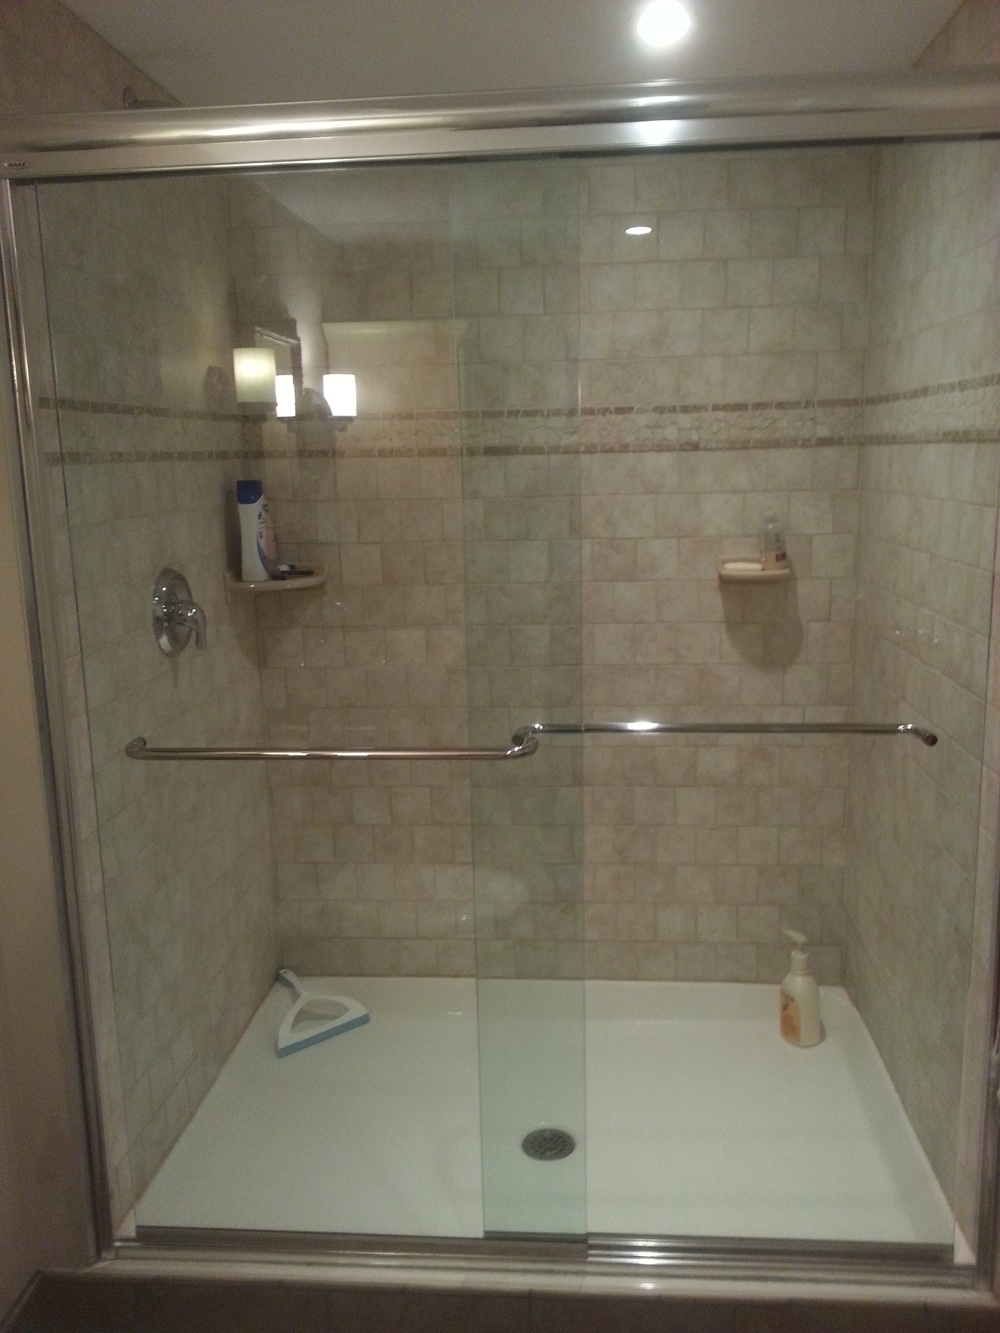 Blakey shower/tub: